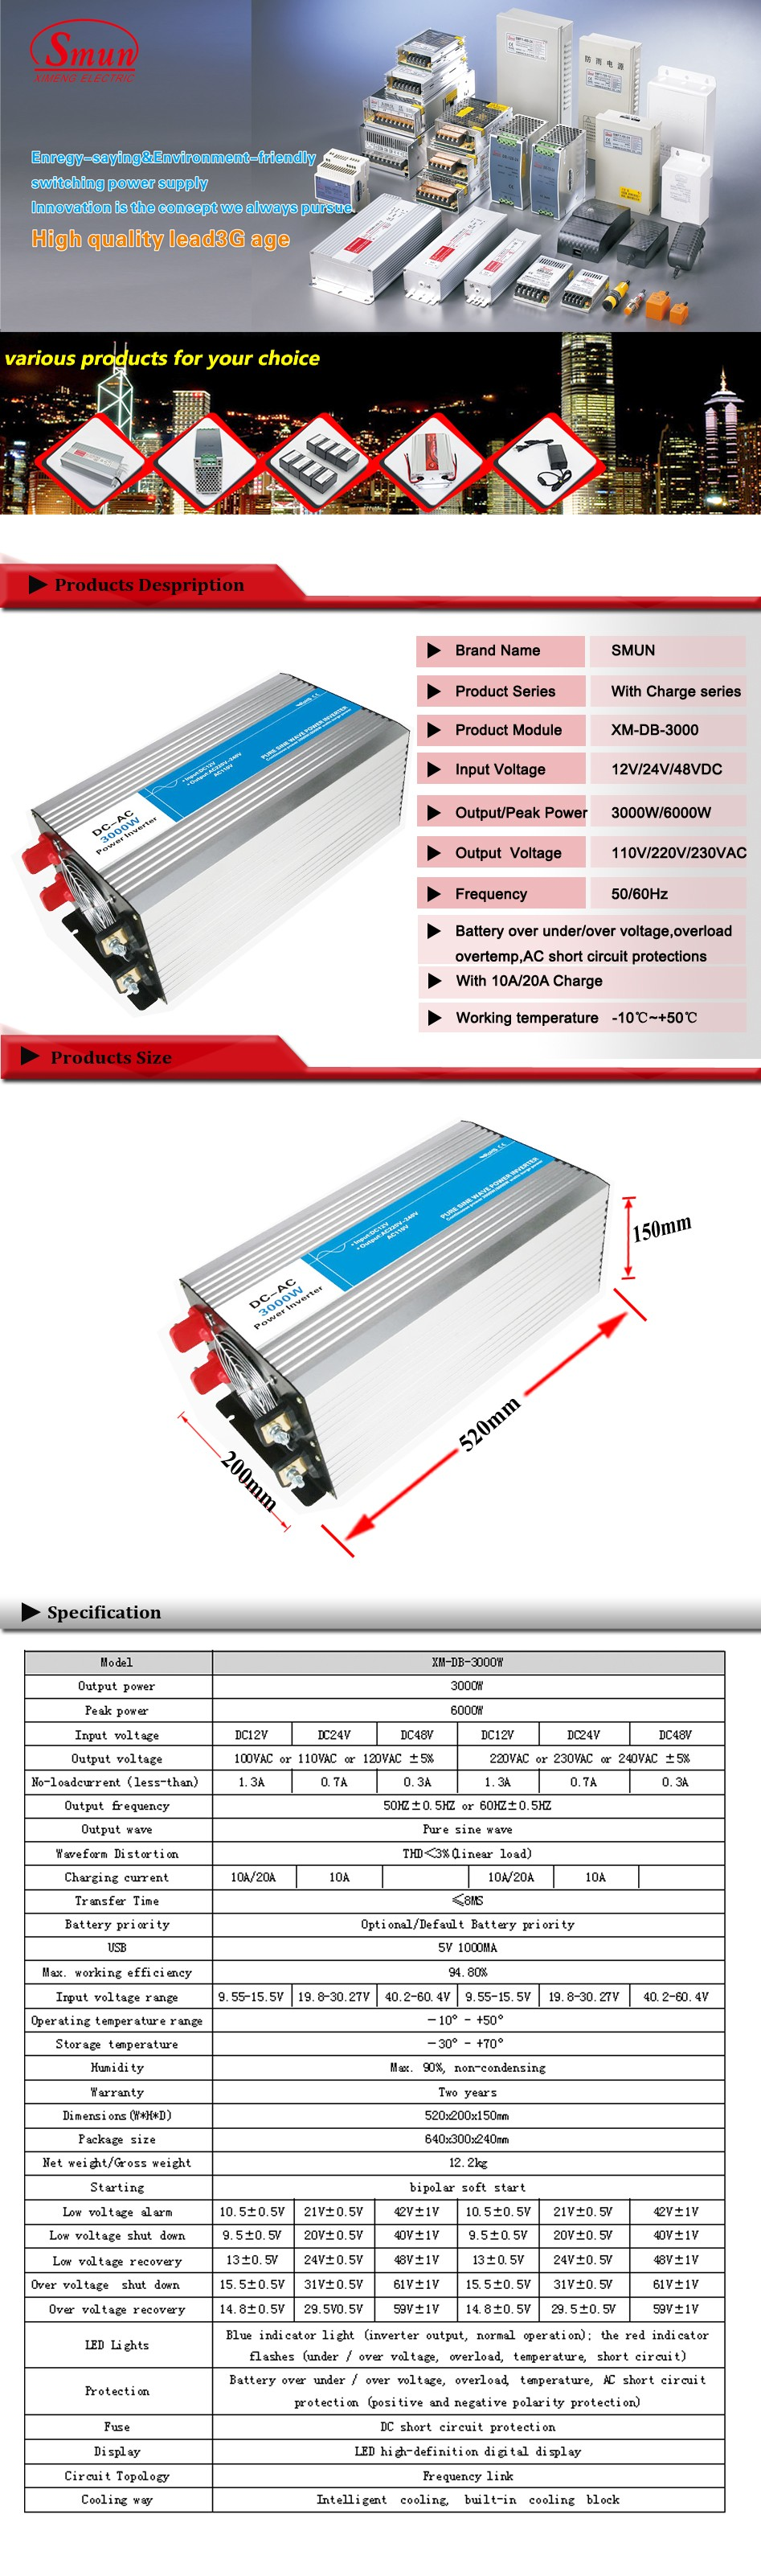 3000w 12vdc To 220vac Pure Sine Wave Inverter With 10a Ac Charge Power Circuit 230vac For Solar Panel And Home Appliances